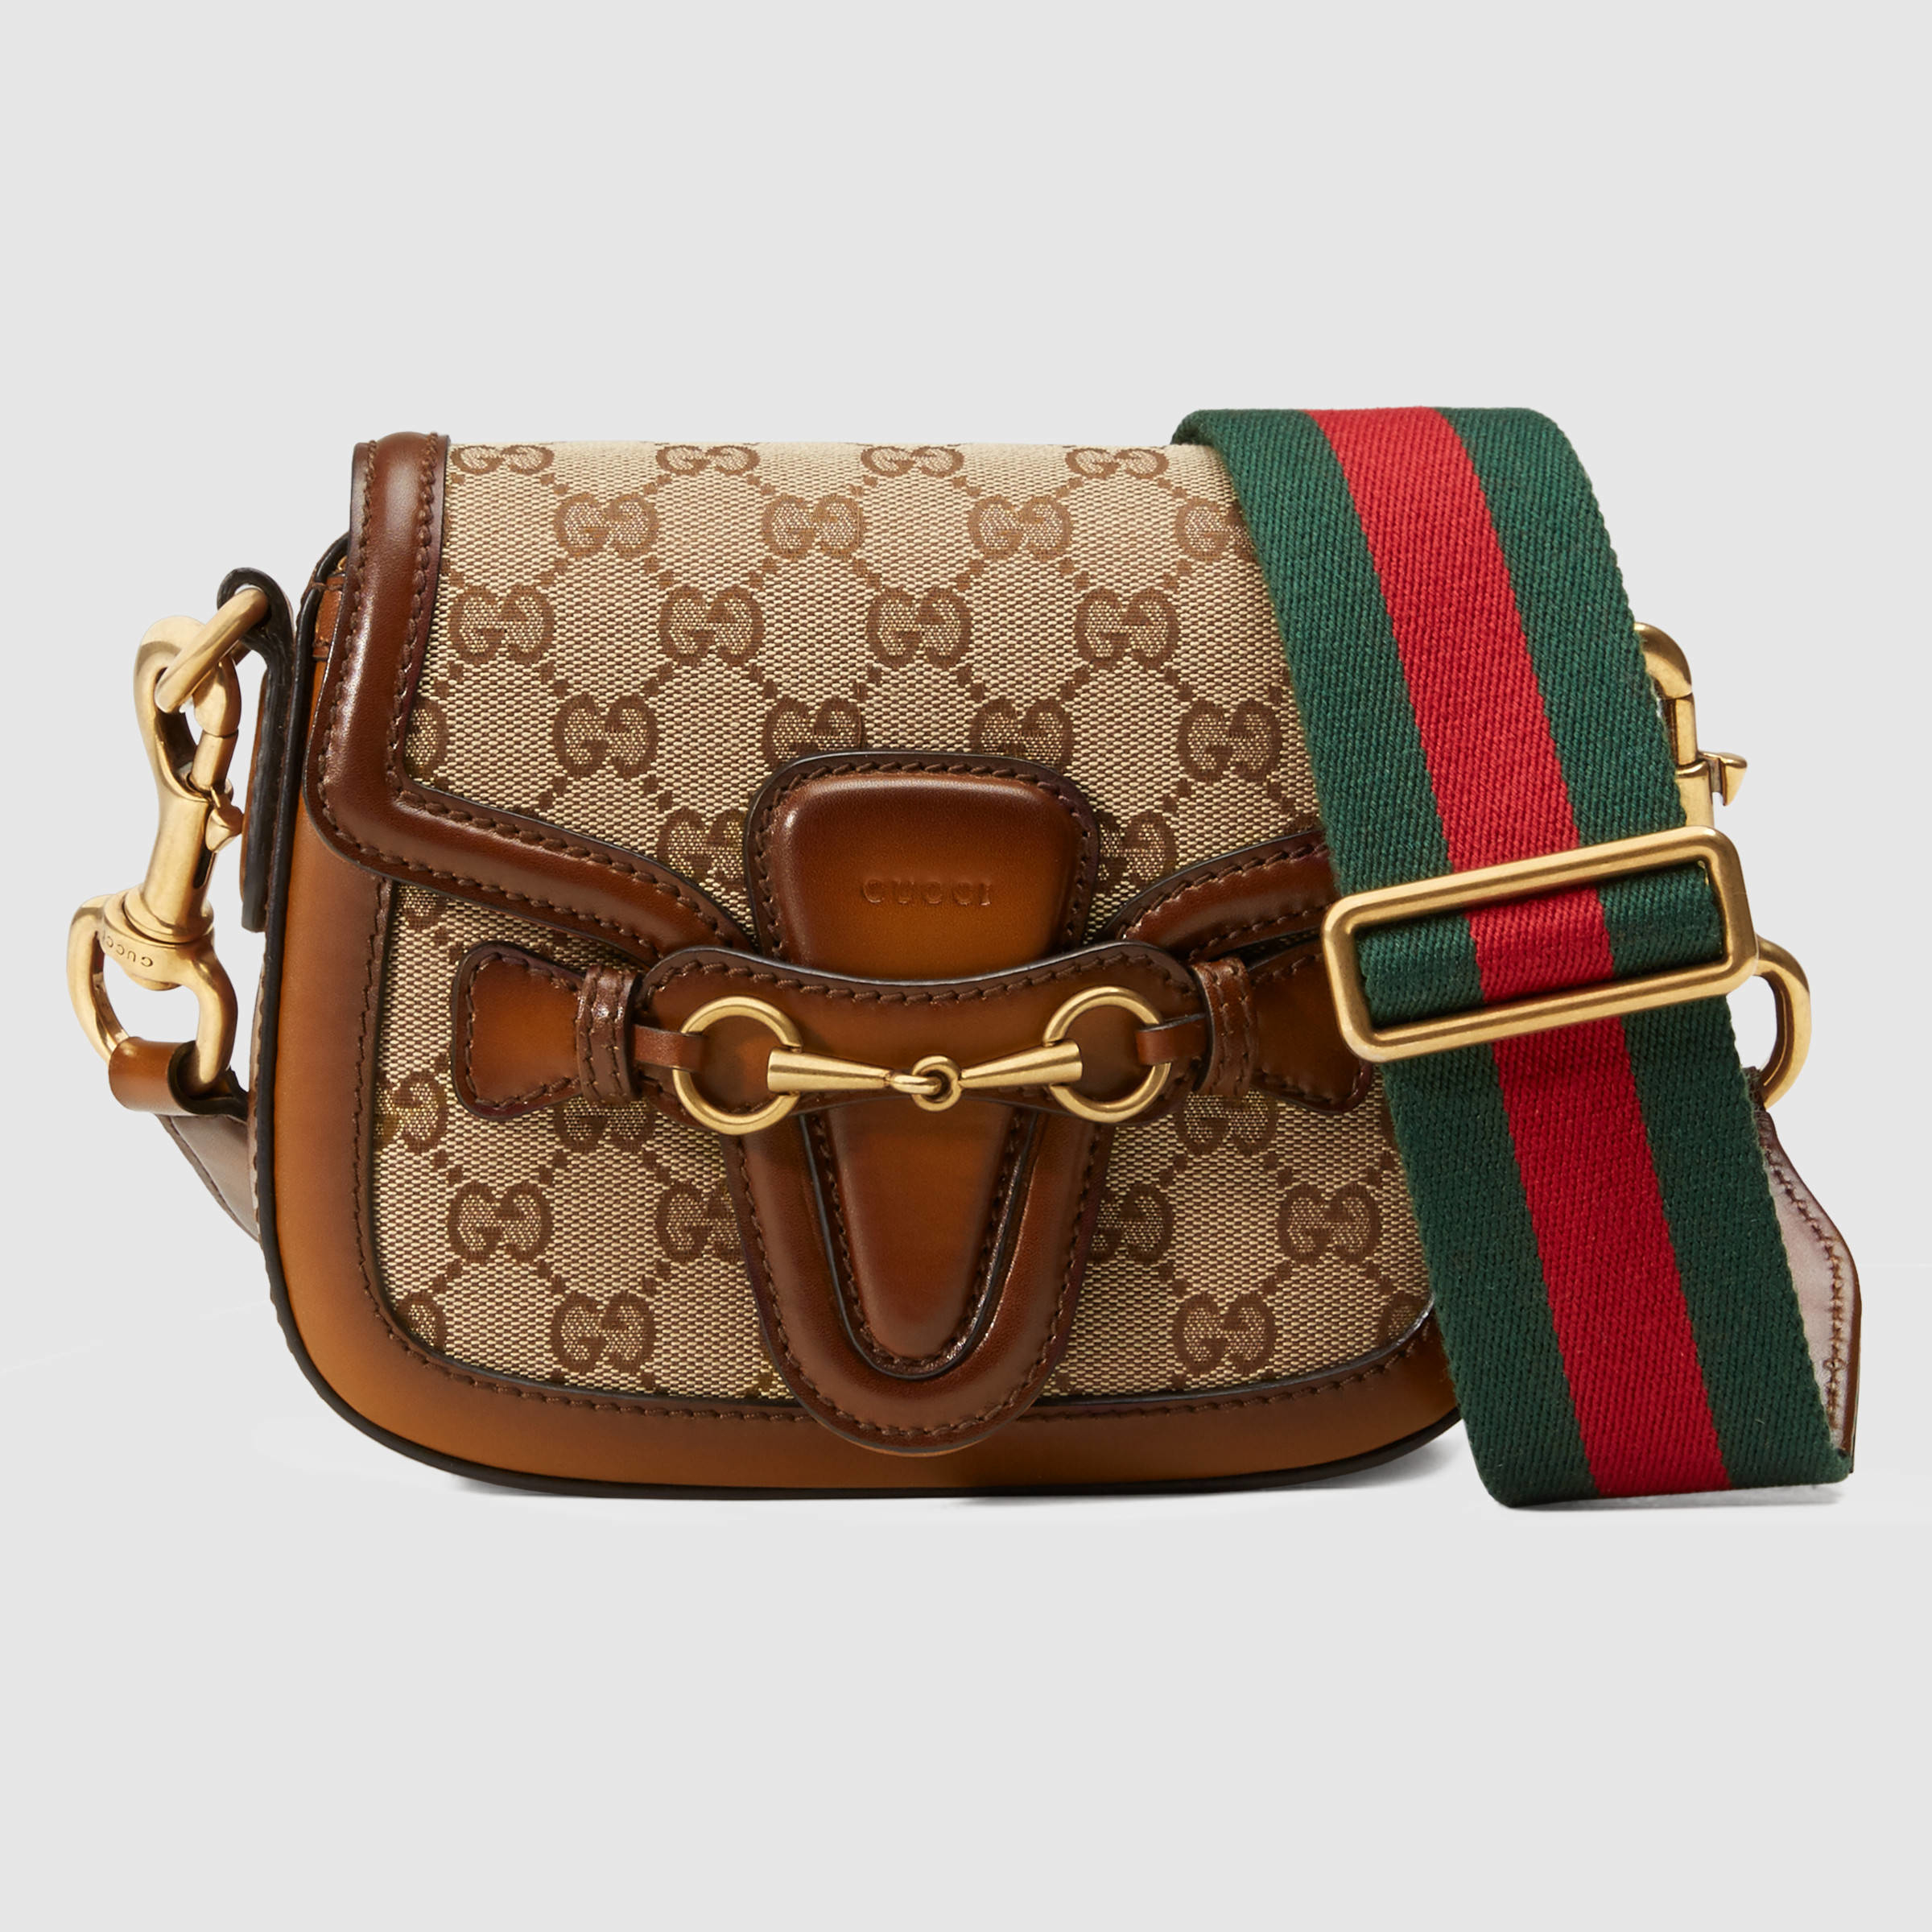 a1f5139432d047 Gucci Lady Web Original Gg Canvas Shoulder Bag in Brown - Lyst